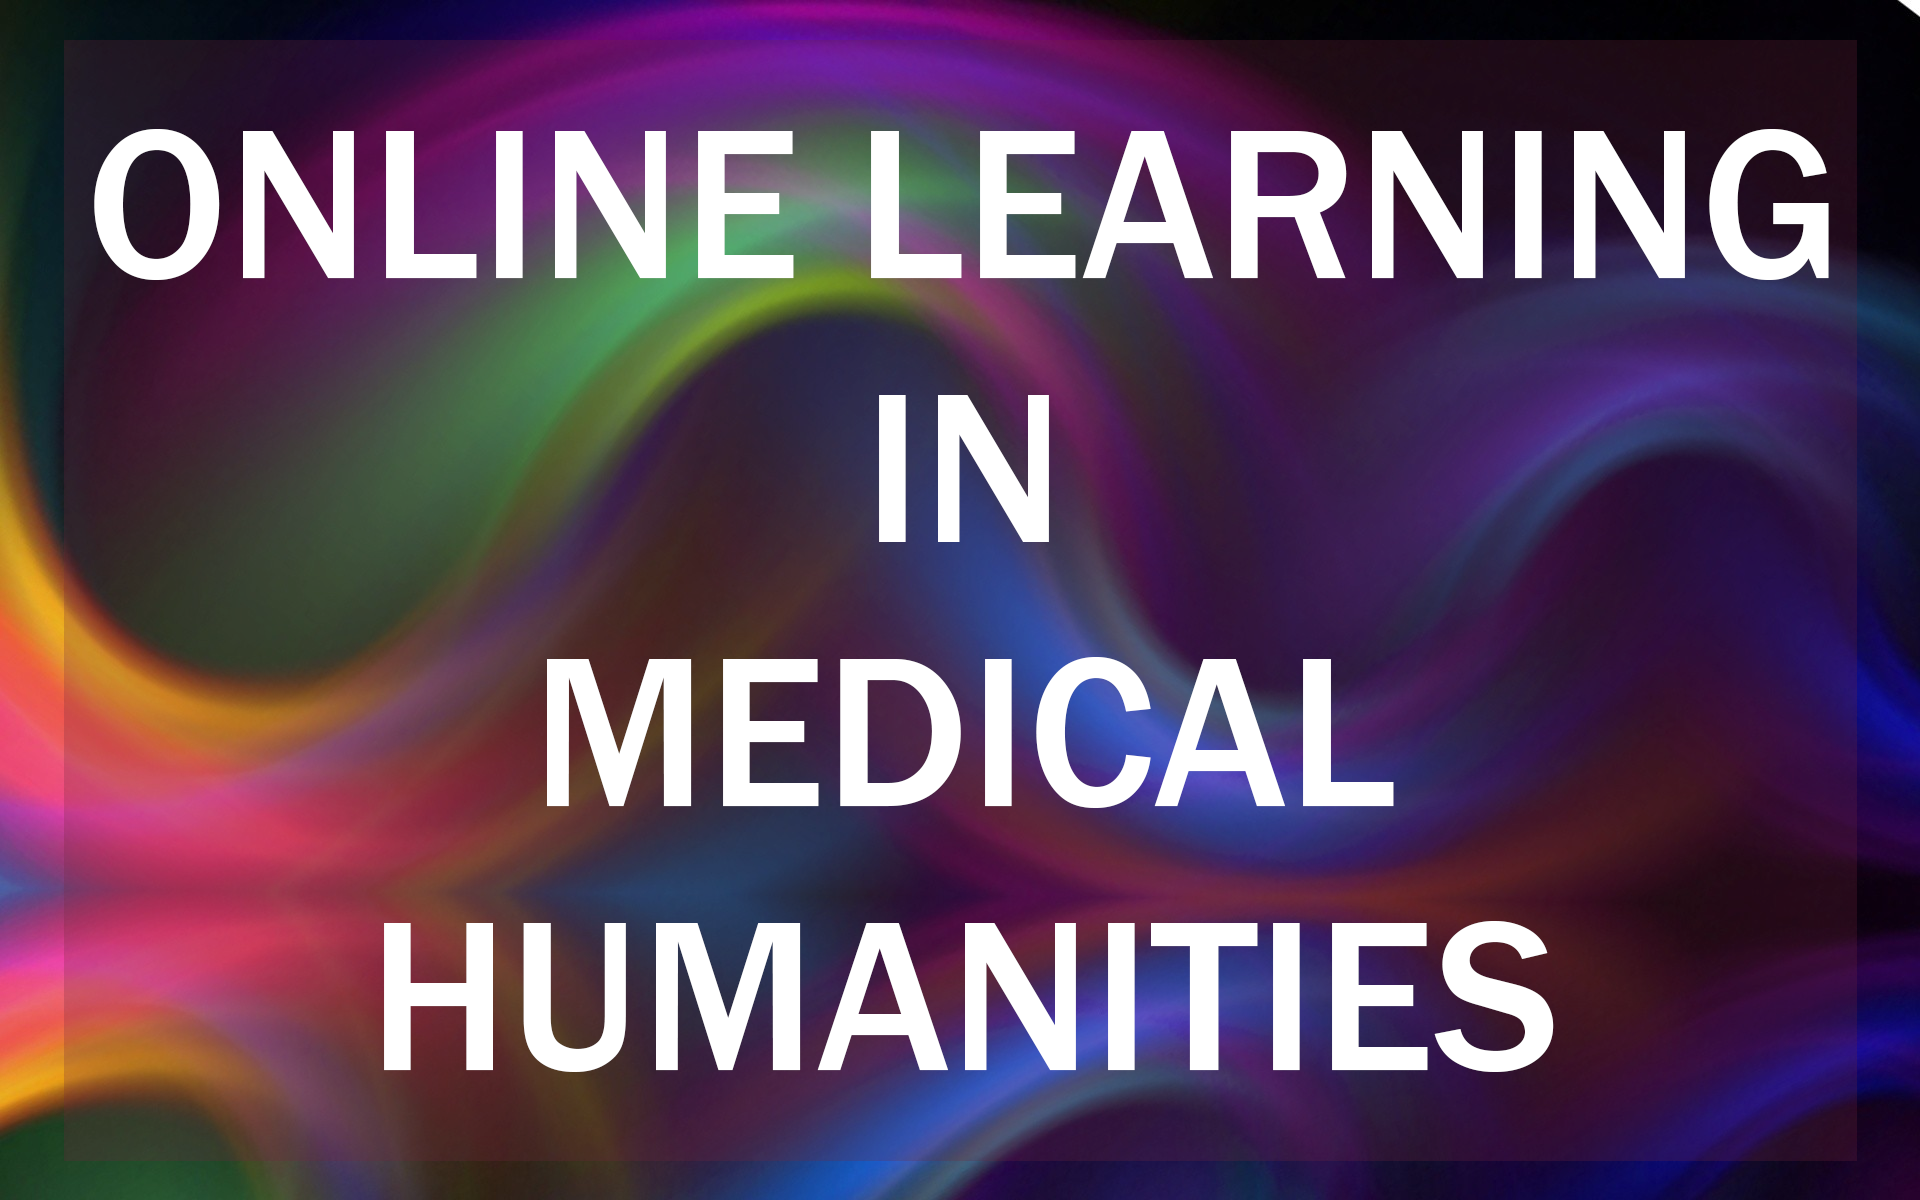 Online Learning in Medical Humanities